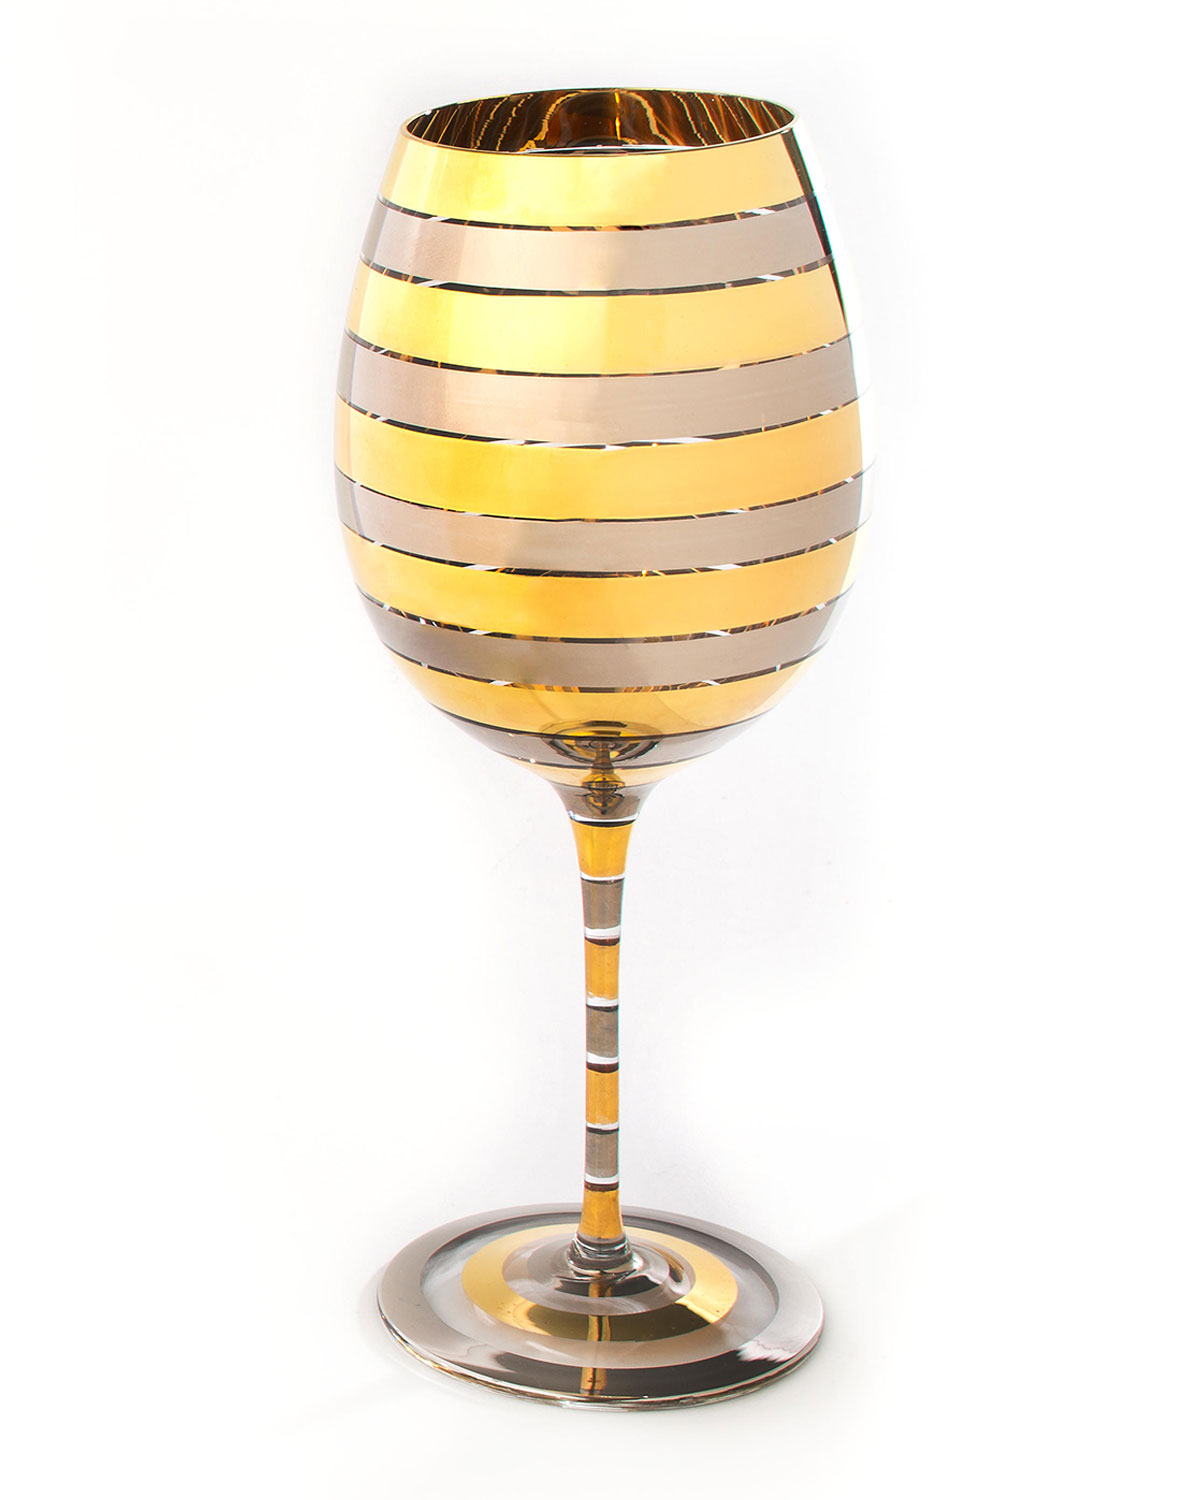 Mackenzie-Childs GOLDEN HOUR RED WINE GLASS